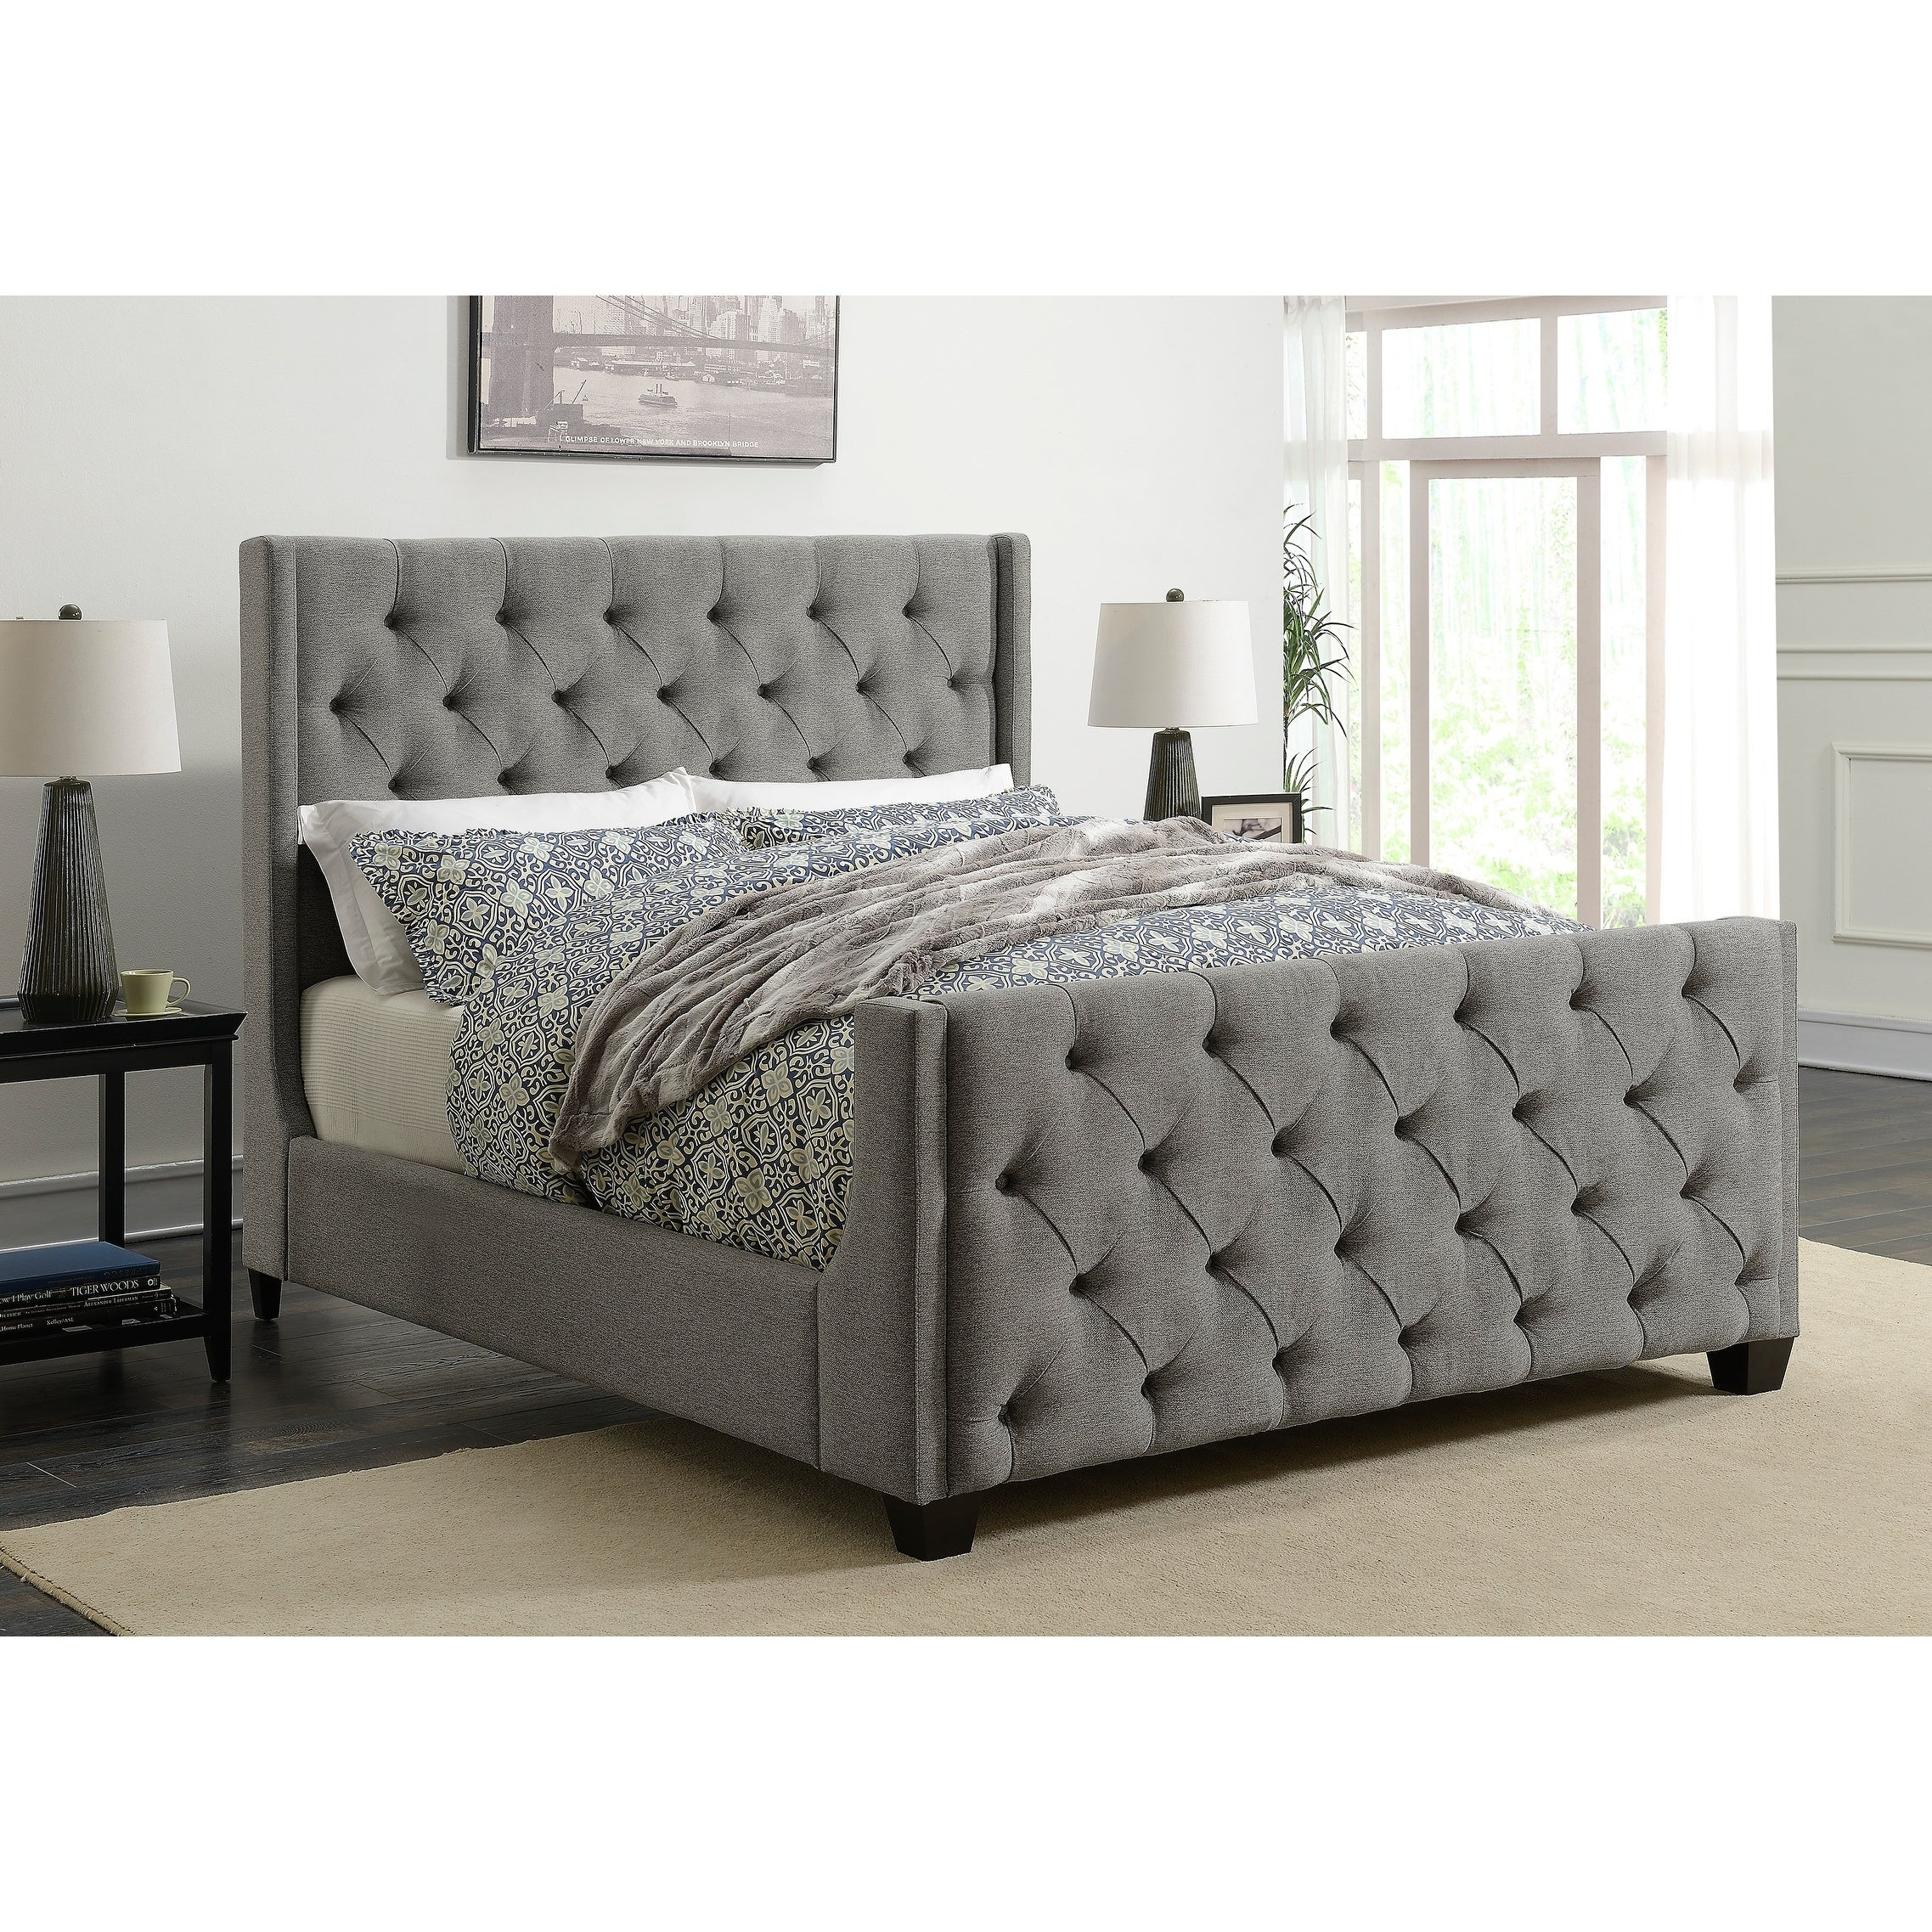 Hadley Grey Upholstered Bed Overstock 27522205